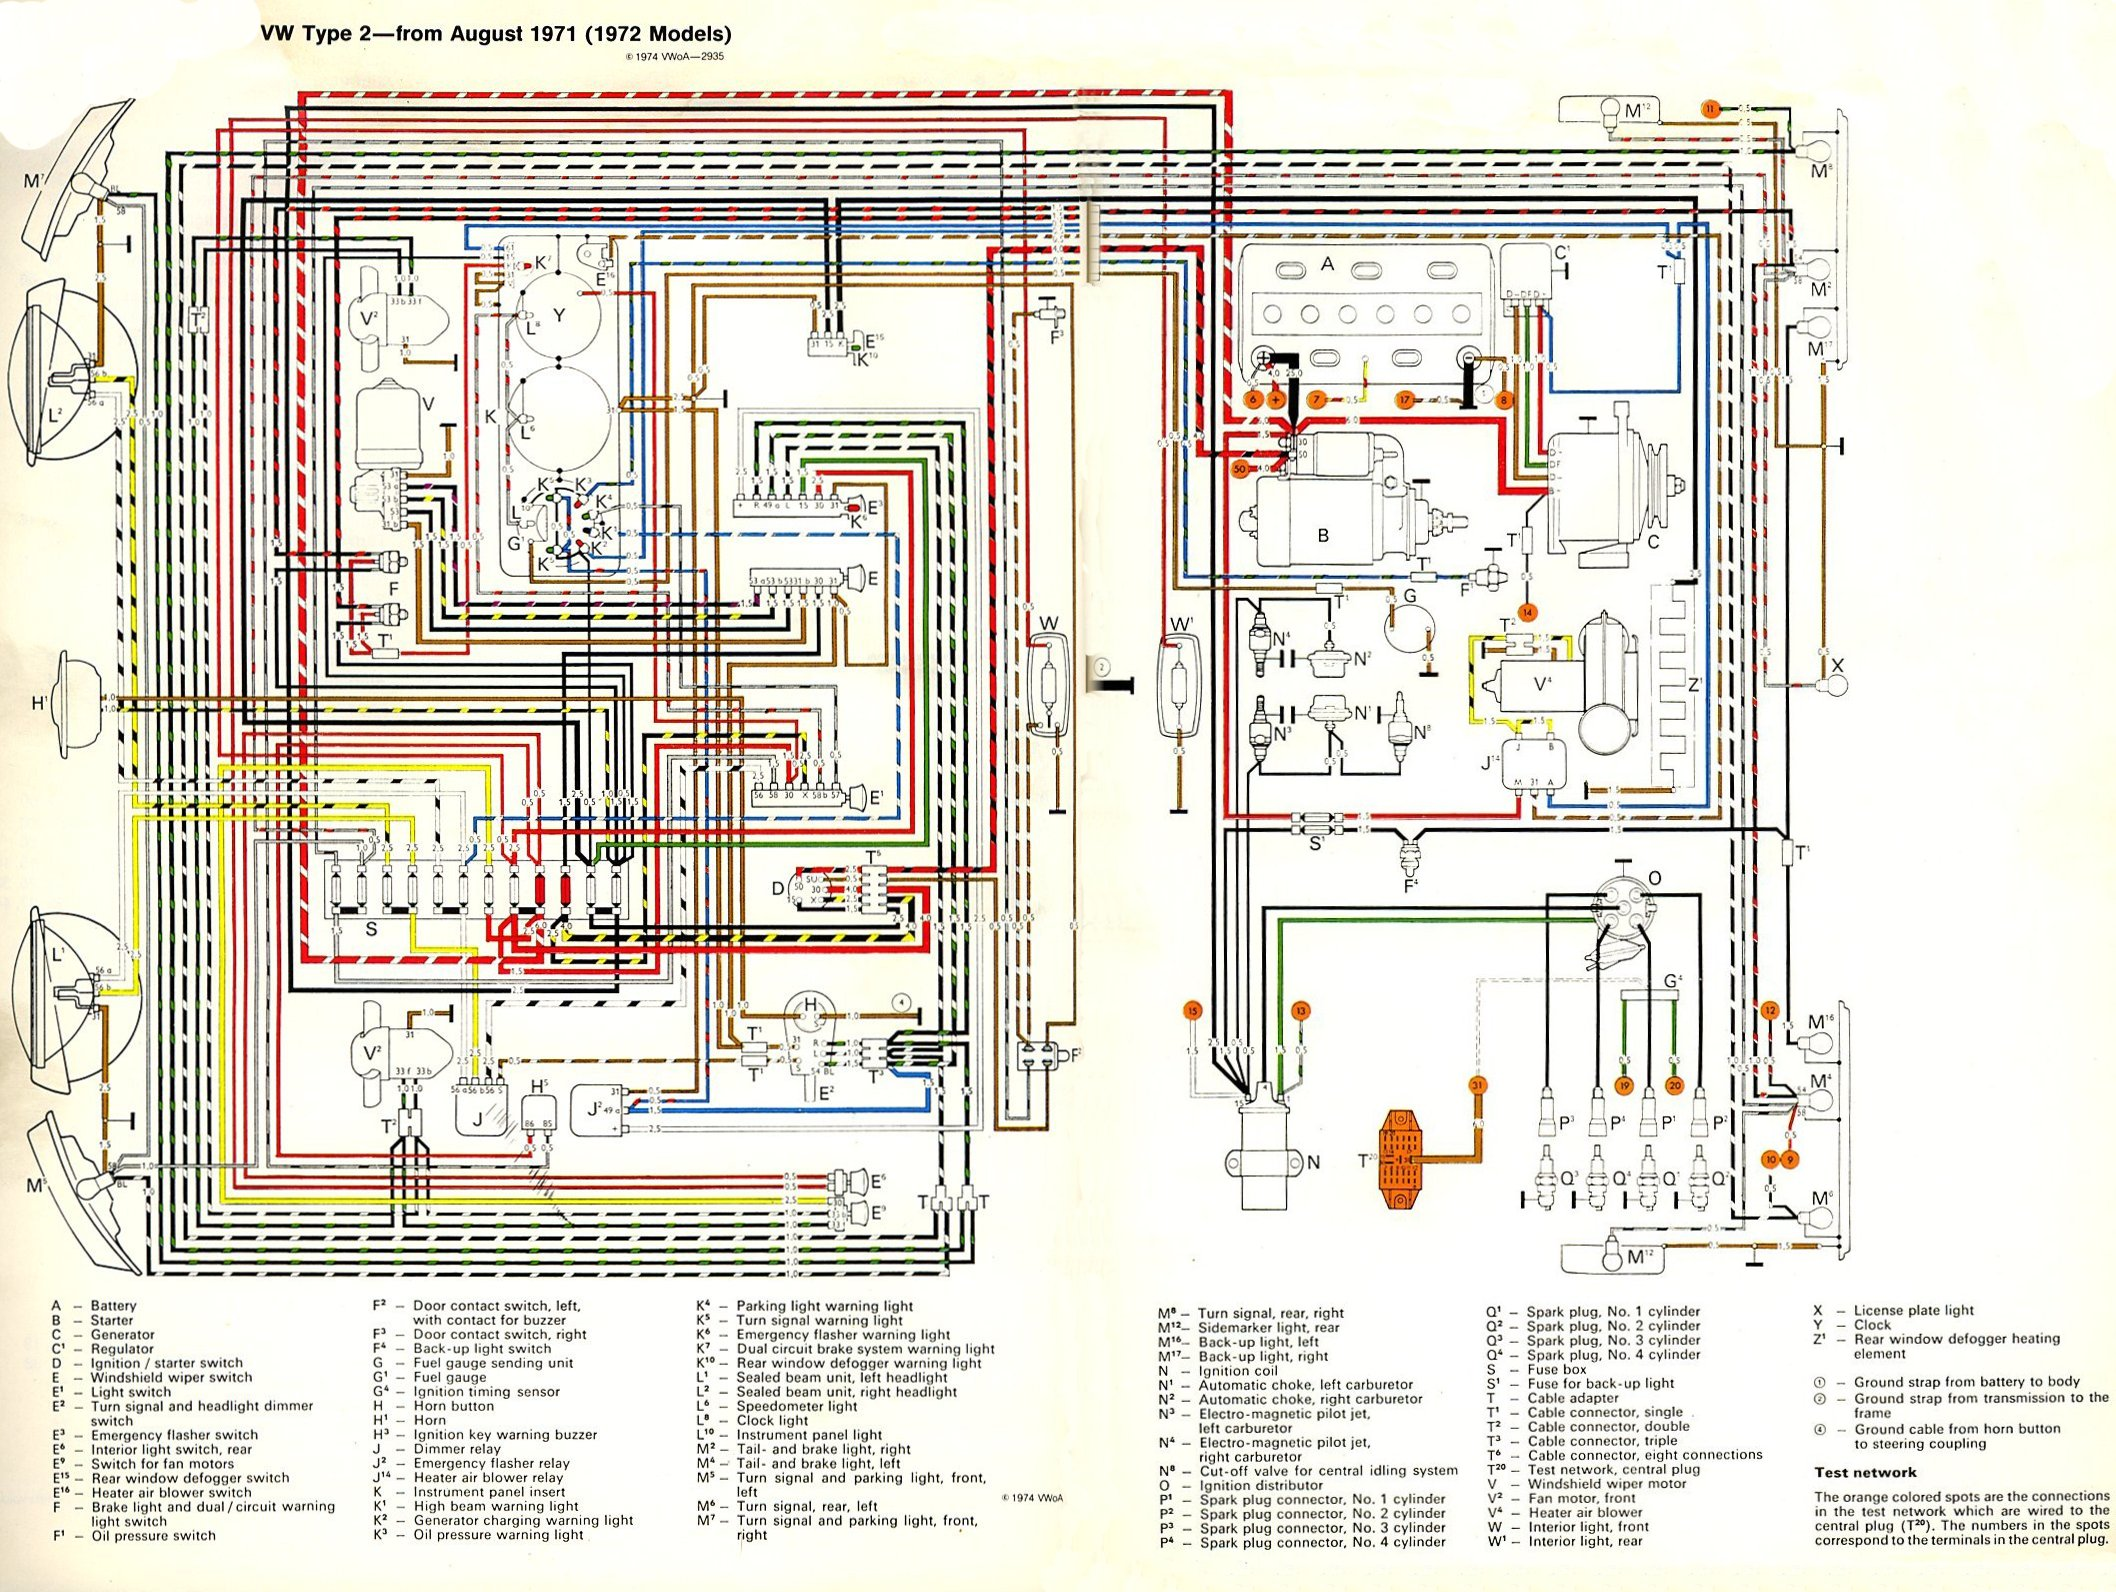 1000+ images about kombi camper on pinterest | upholstery ... 1971 vw bus engine diagram 1978 vw bus engine diagram